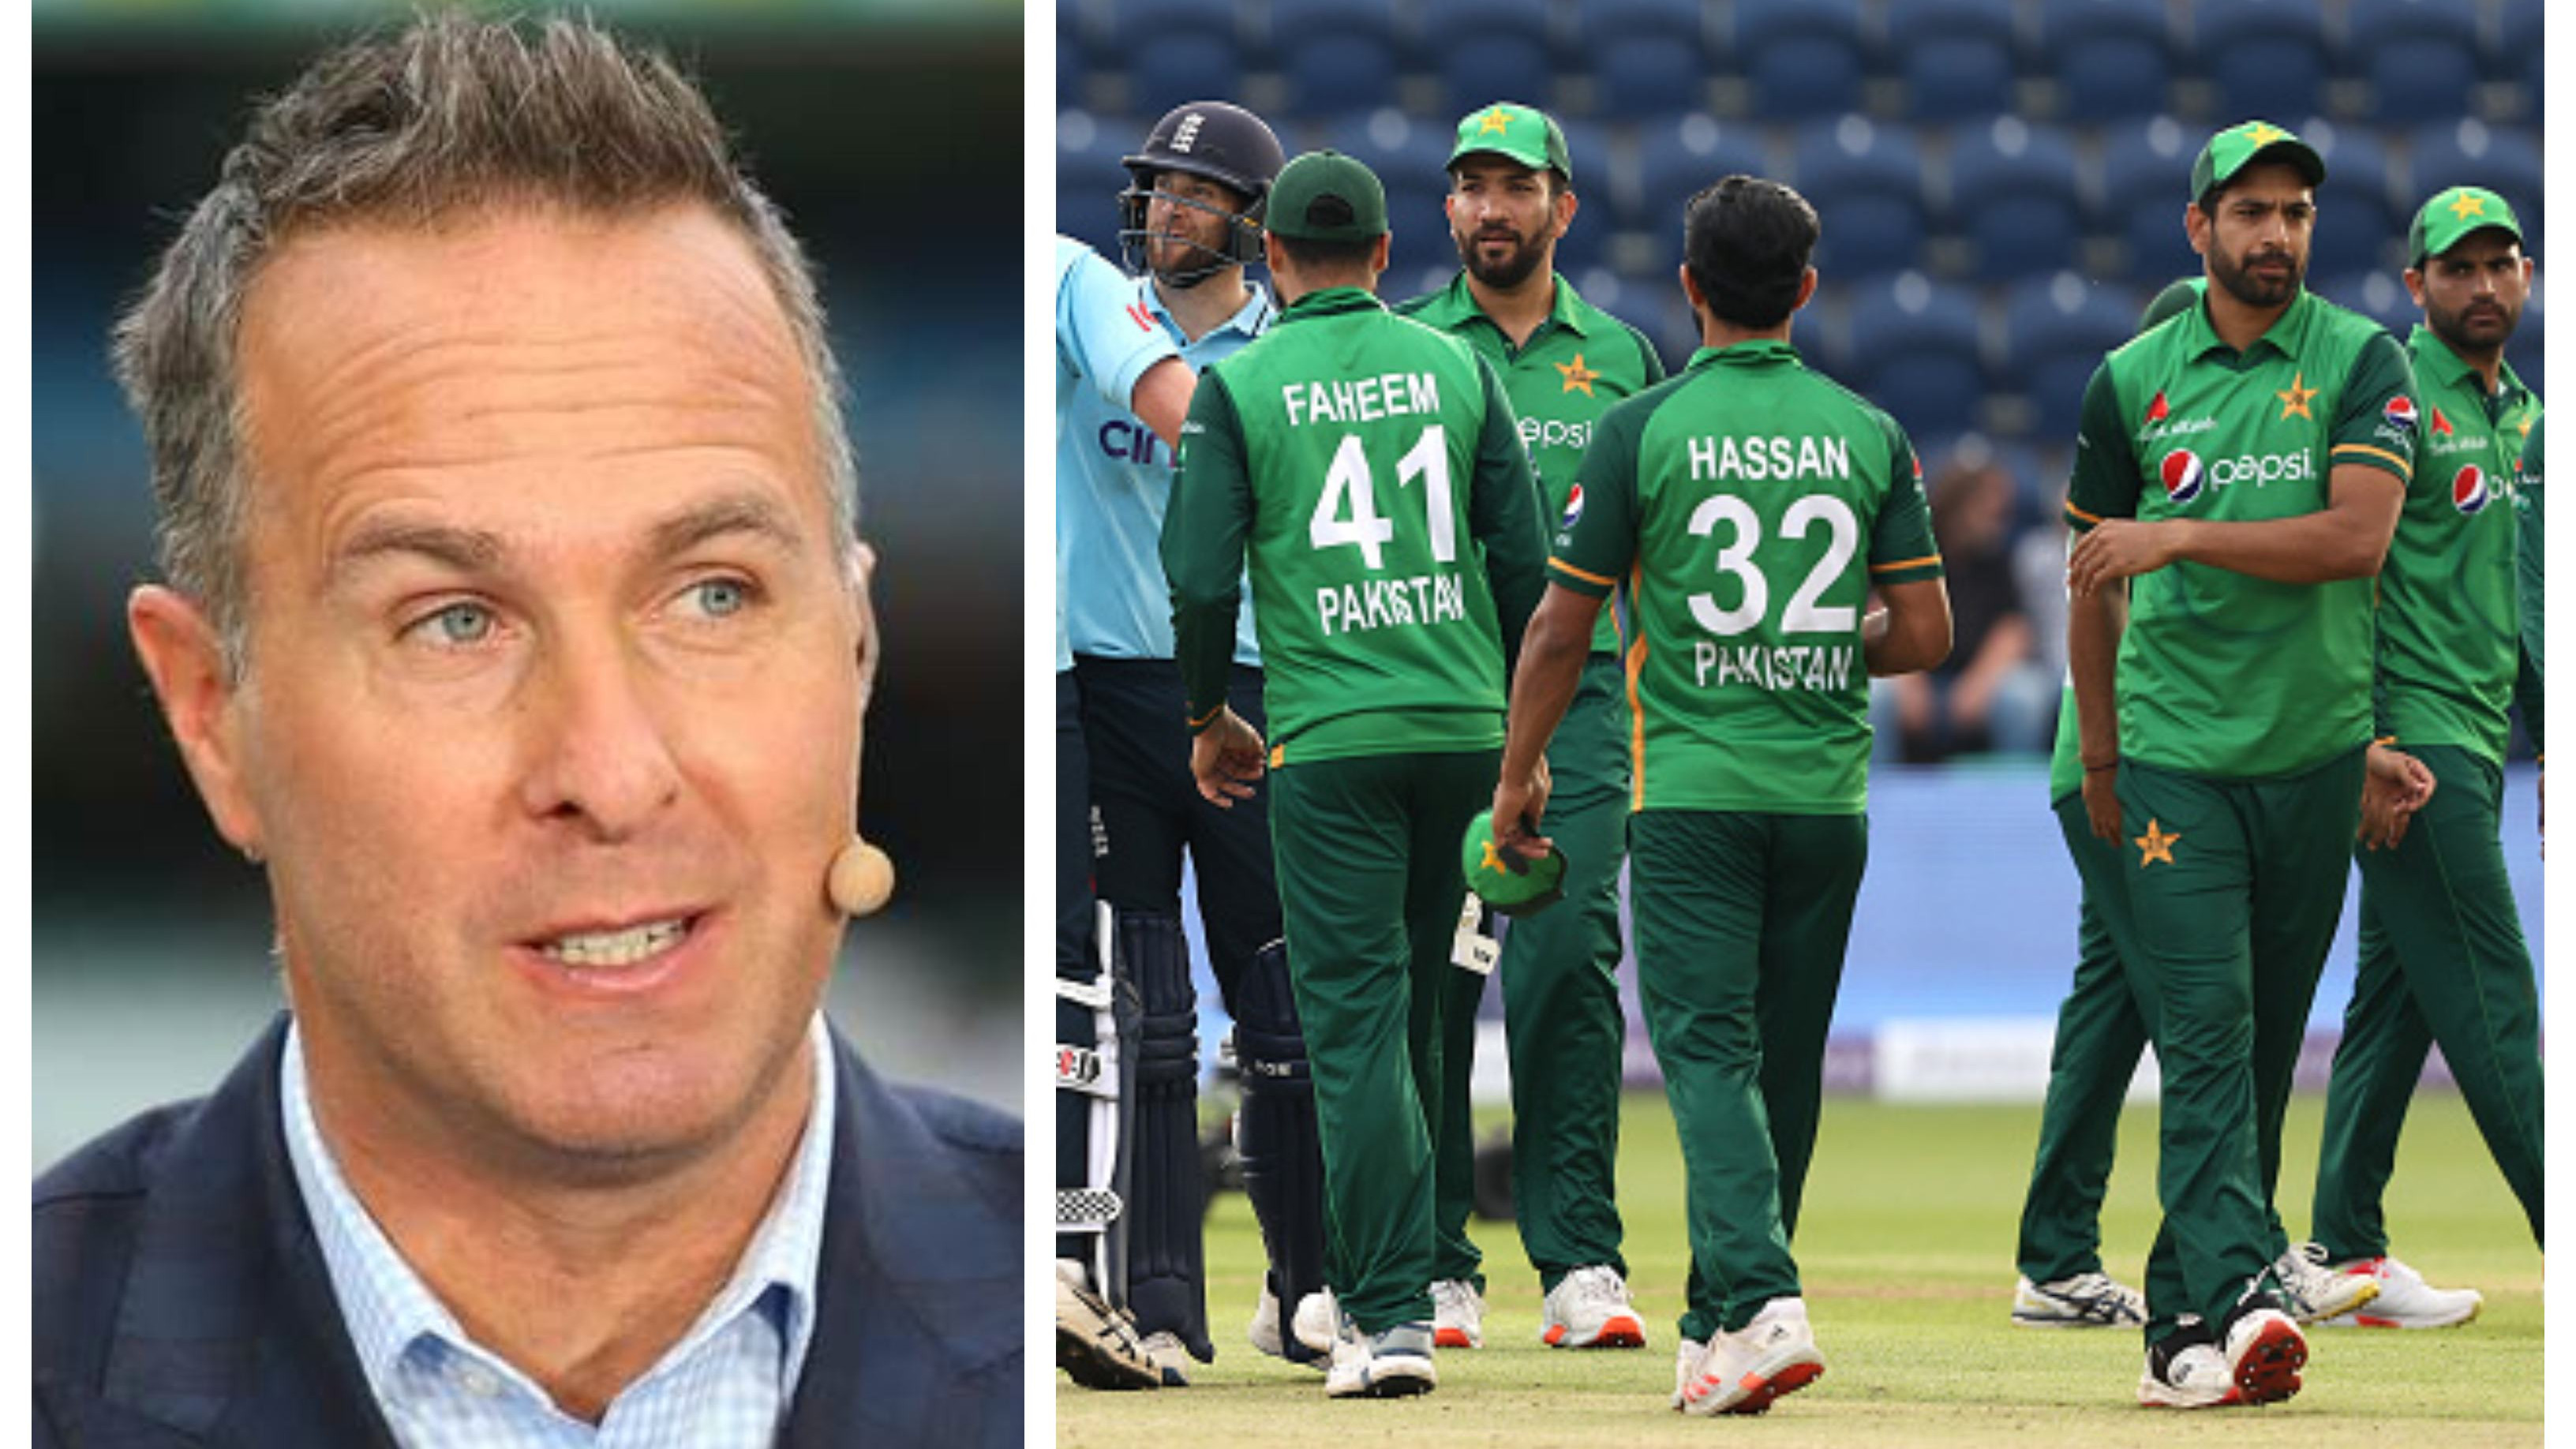 ENG v PAK 2021: 'They were pathetic', Michael Vaughan slams Pakistan's outing in first ODI